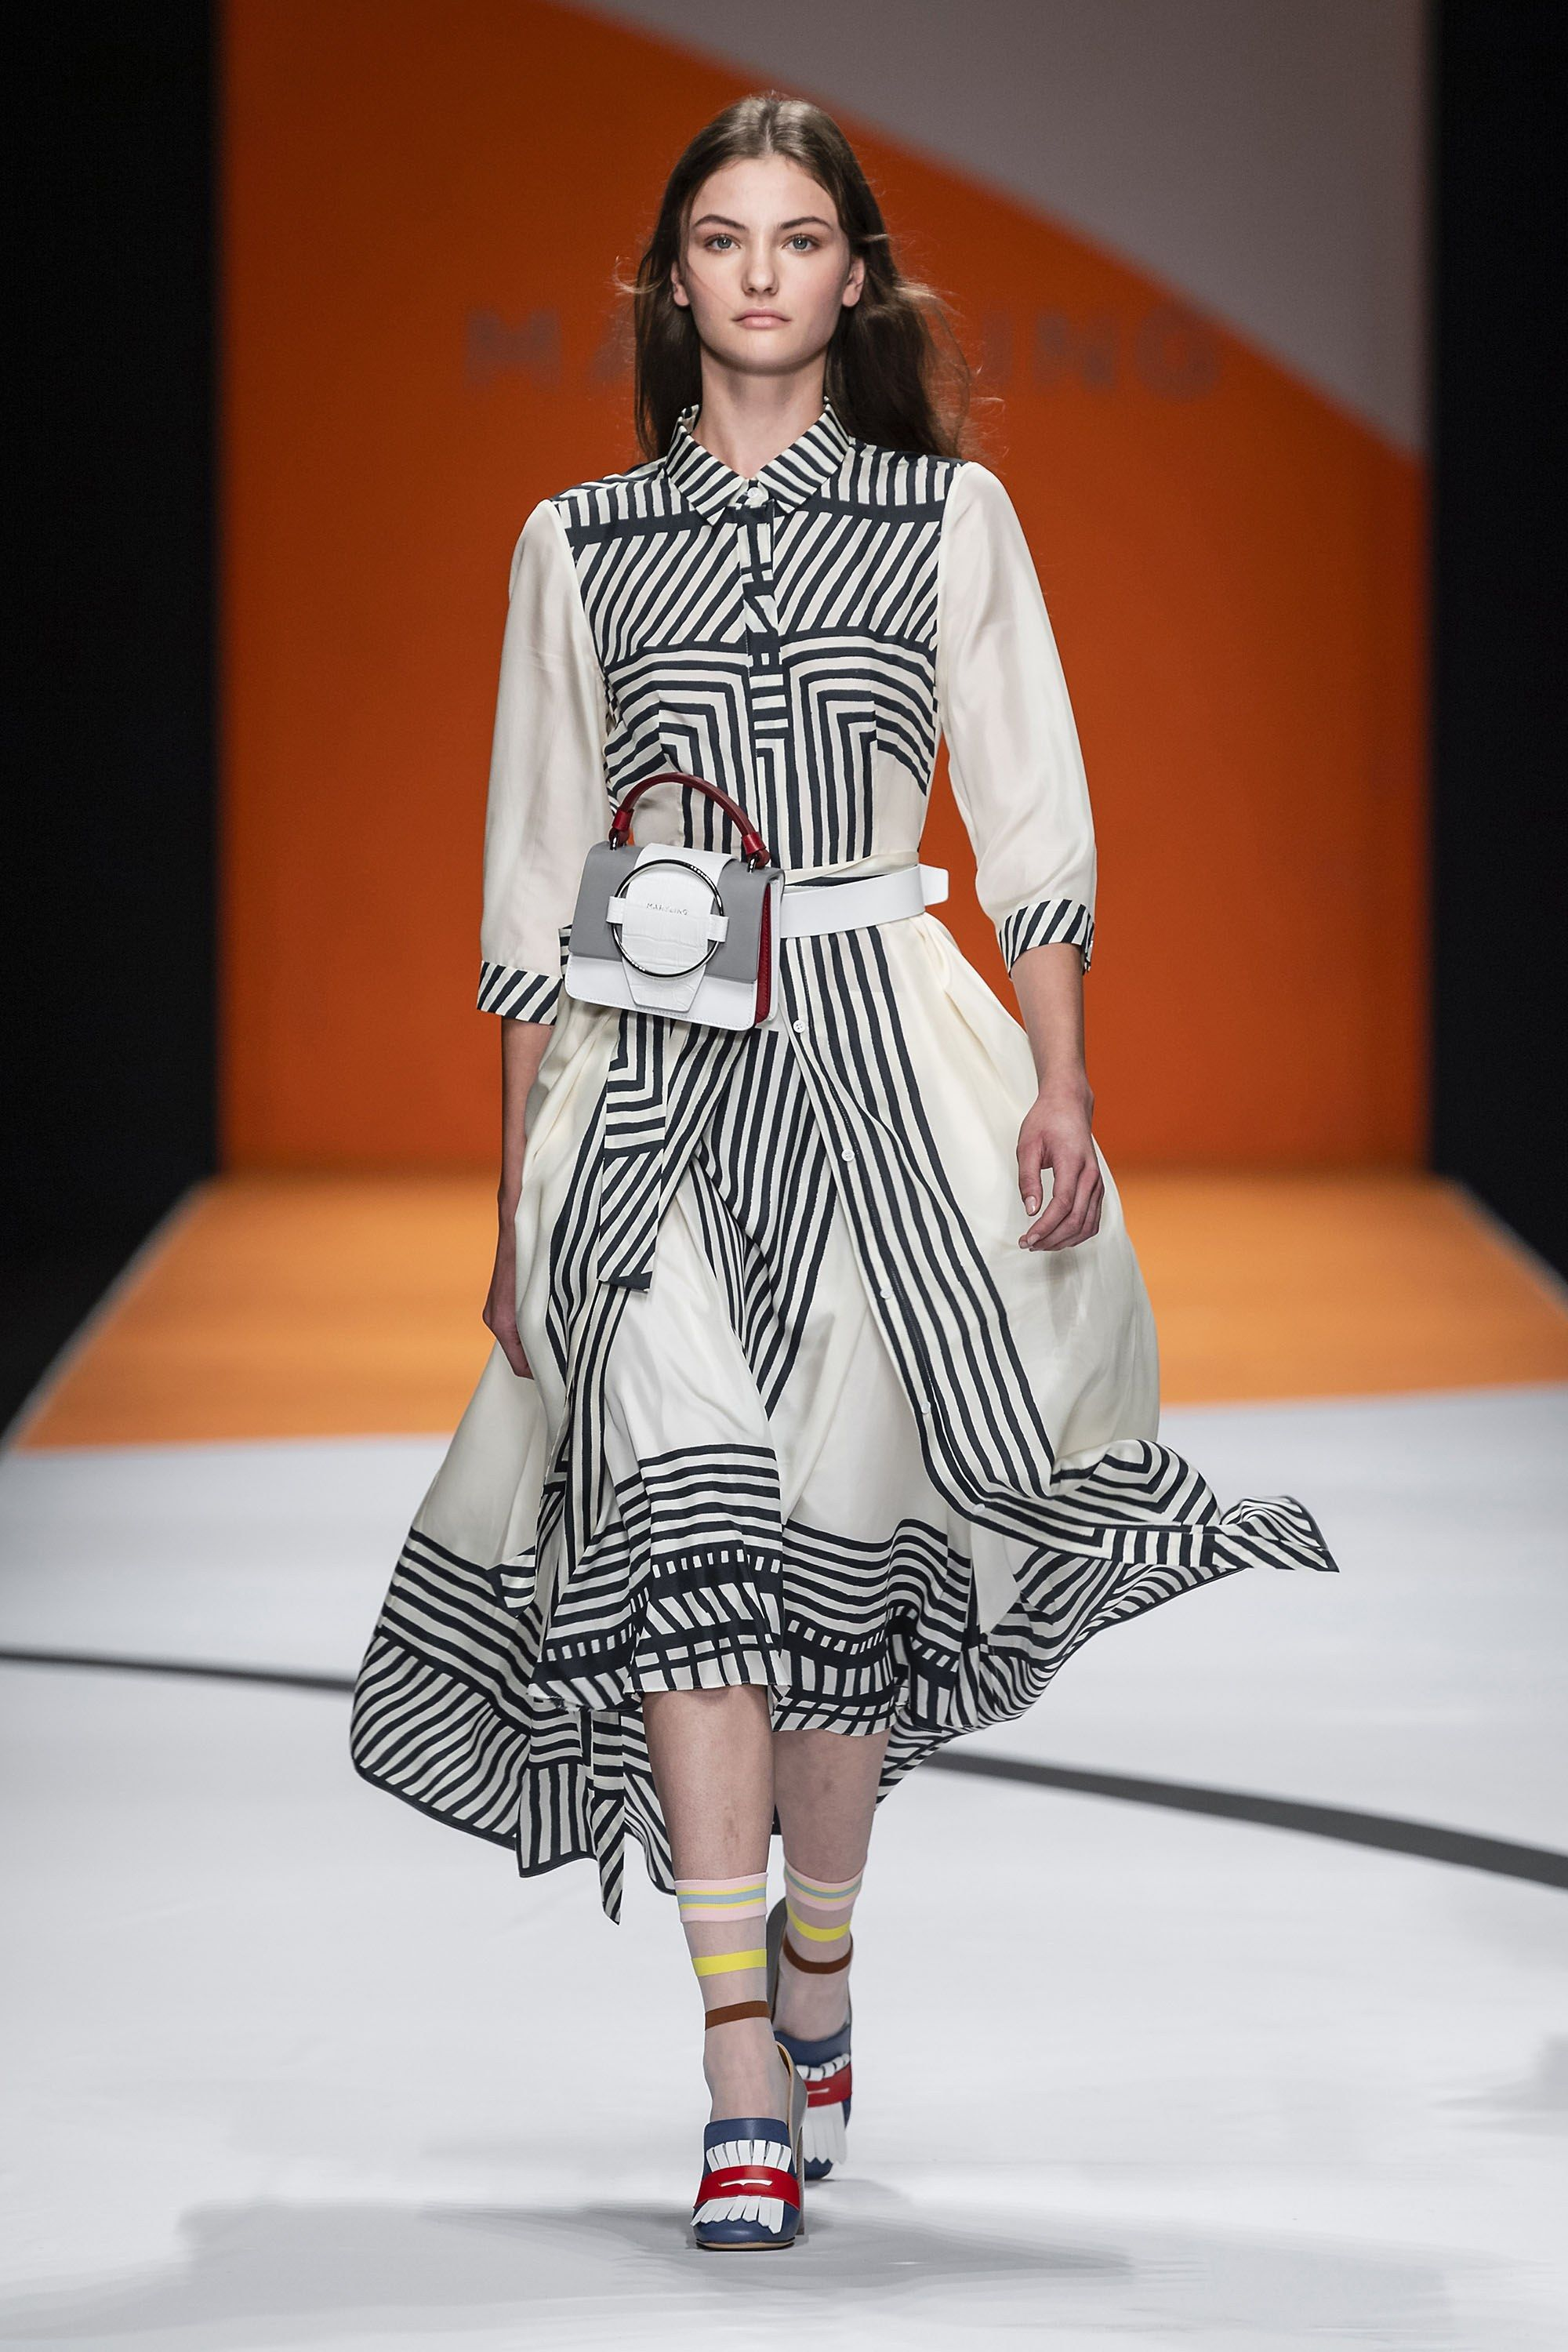 dd1599d95f Maryling Spring 2019 Ready-to-Wear Collection - Vogue